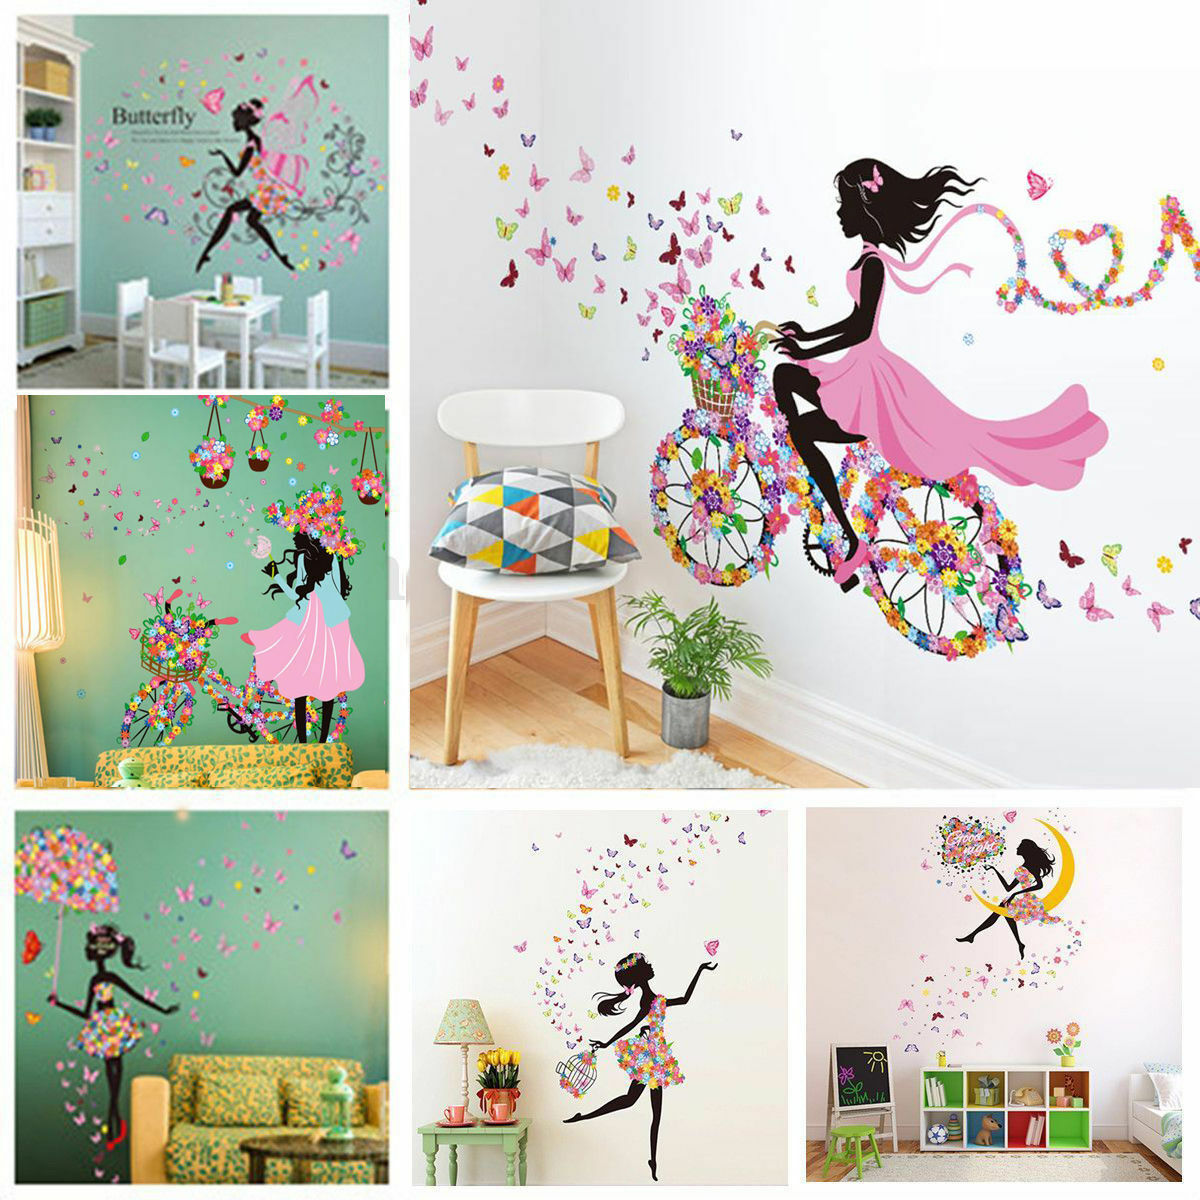 m dchen schmetterling wandaufkleber wandsticker wandtattoo kinderzimmer dekor eur 3 46. Black Bedroom Furniture Sets. Home Design Ideas